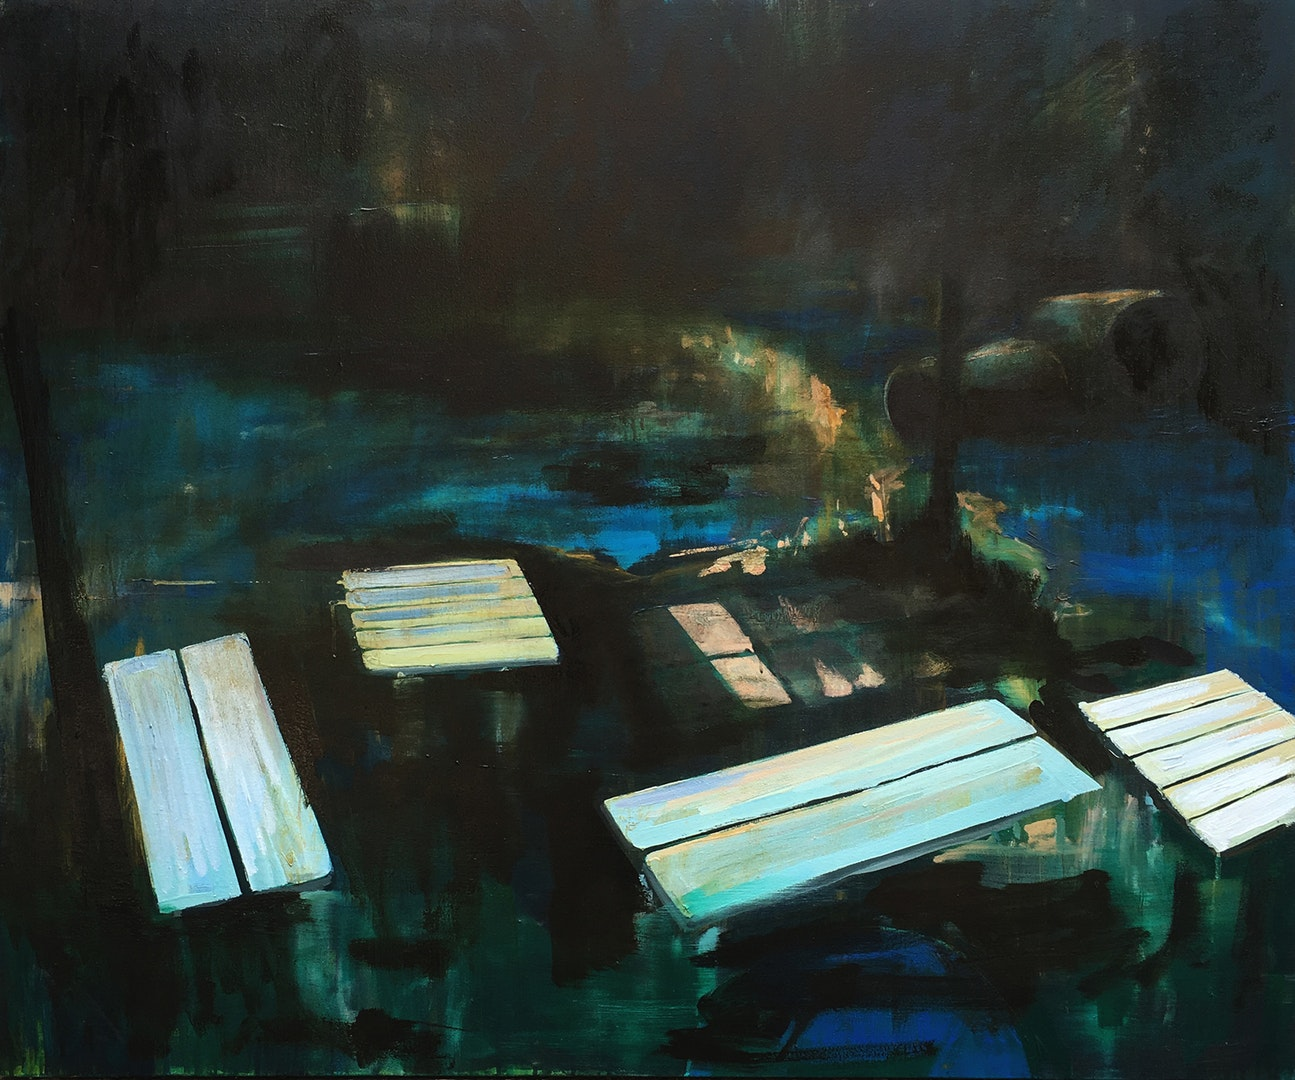 Paul Smith  Omens & Portents  Oil on canvas, 100 x 120 x 3 cm  http://www.paulsmithart.co.uk